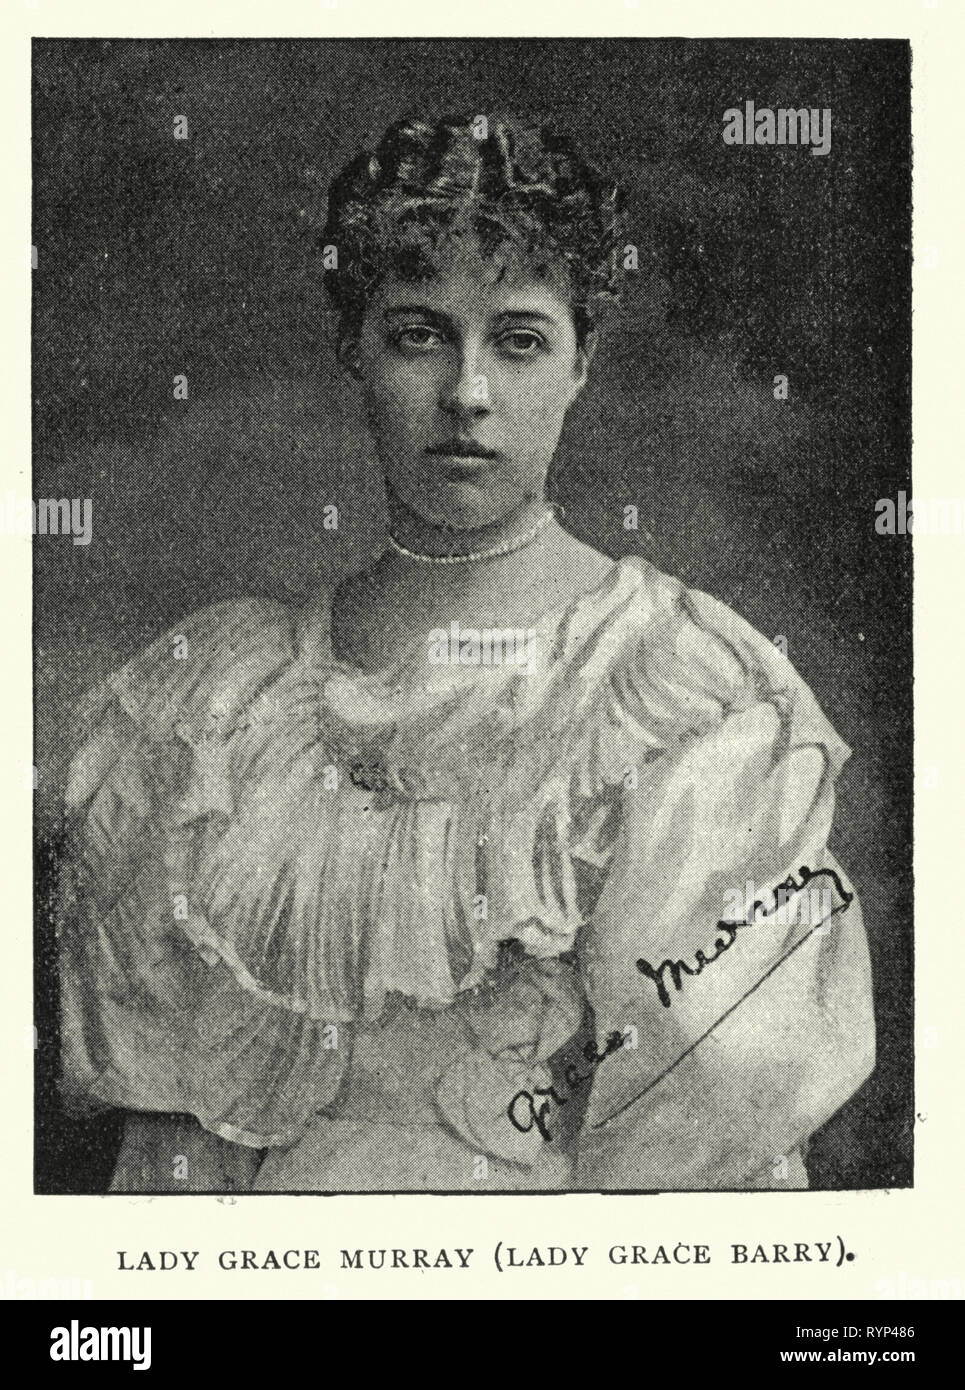 Vintage photograph of Lady Grace Murray (Lady Grace Barry), 1890s, 19th Century, Victorian - Stock Image